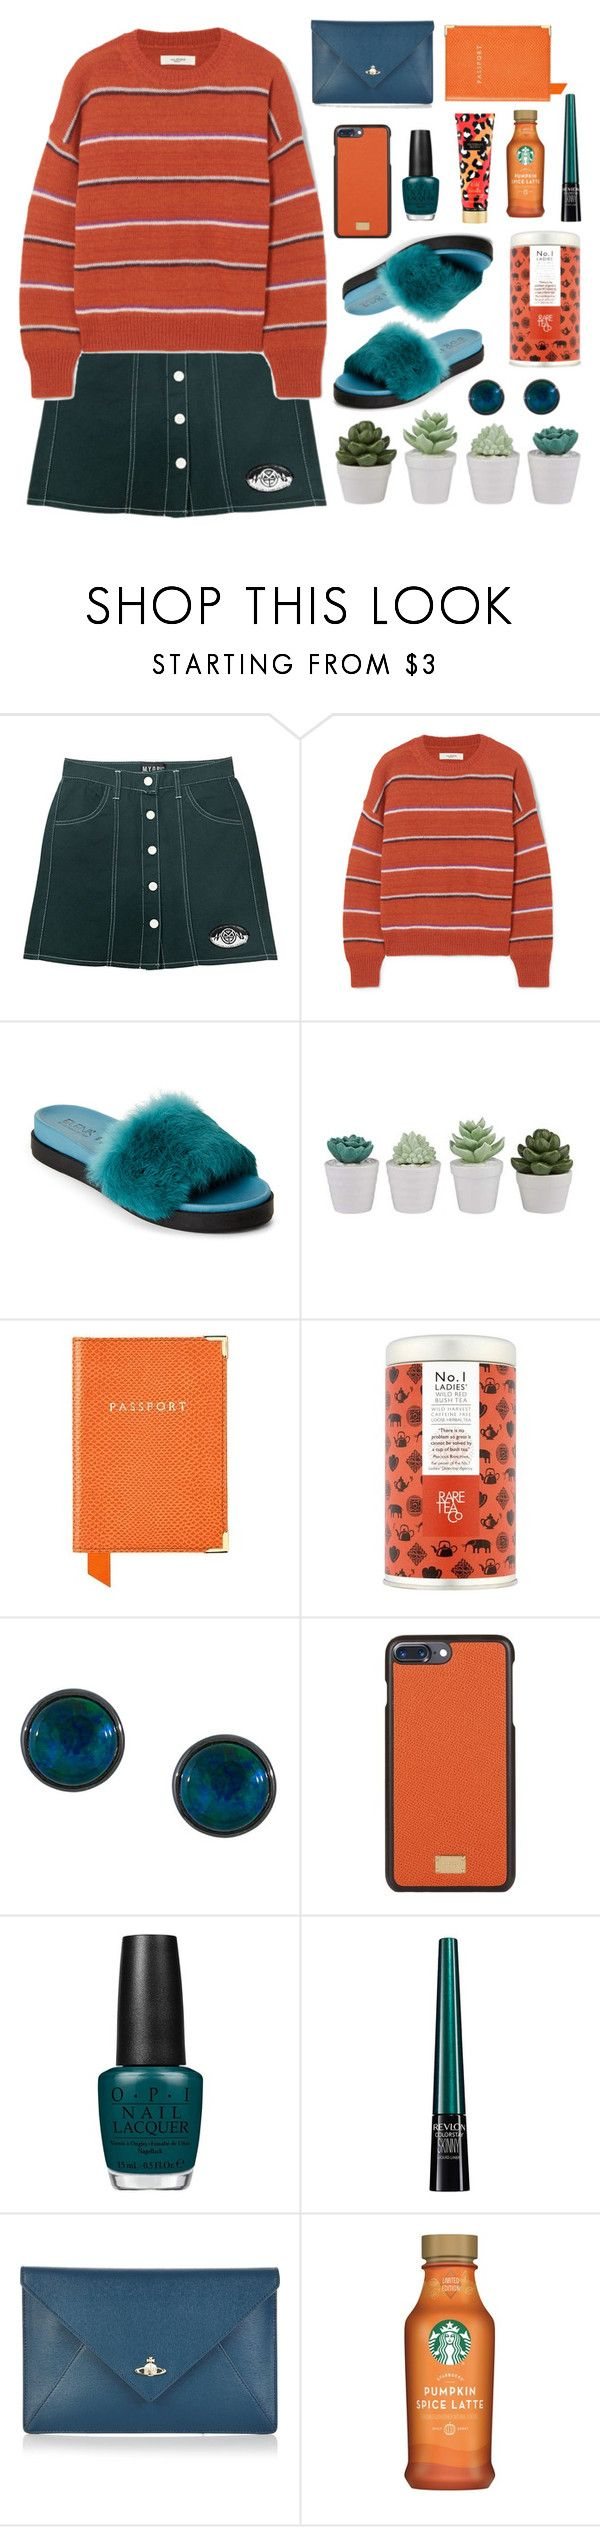 """#PolyPresents: Last-Minute Gifts"" by xxabella ❤ liked on Polyvore featuring M.Y.O.B., Étoile Isabel Marant, Aspinal of London, Astley Clarke, Dolce&Gabbana, OPI, Revlon, Vivienne Westwood and Victoria's Secret"